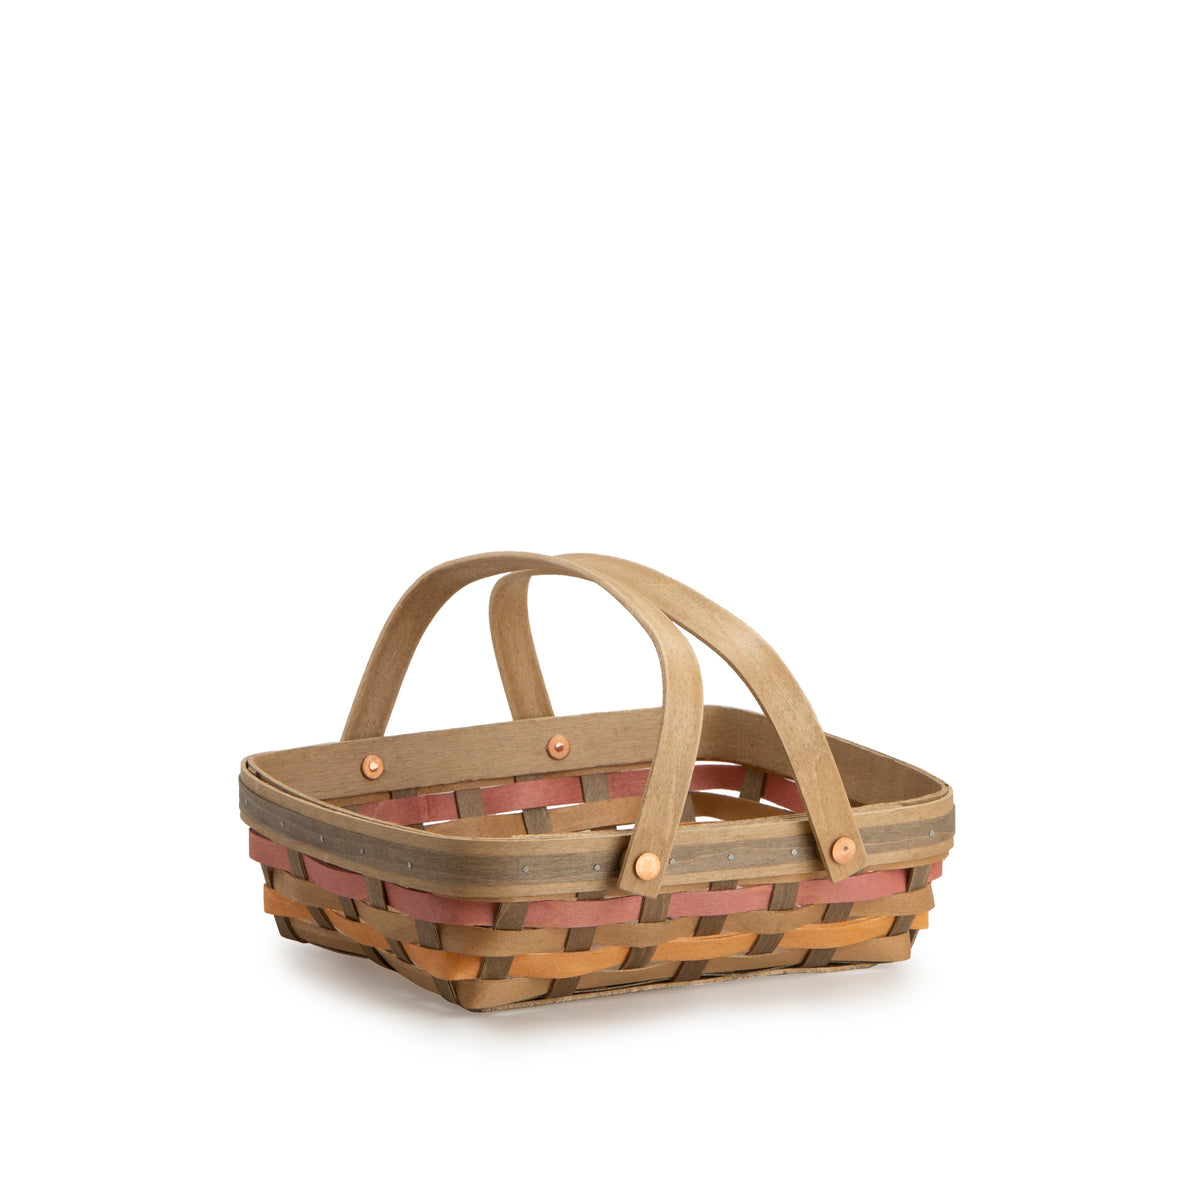 Small Apple Picking Basket Set